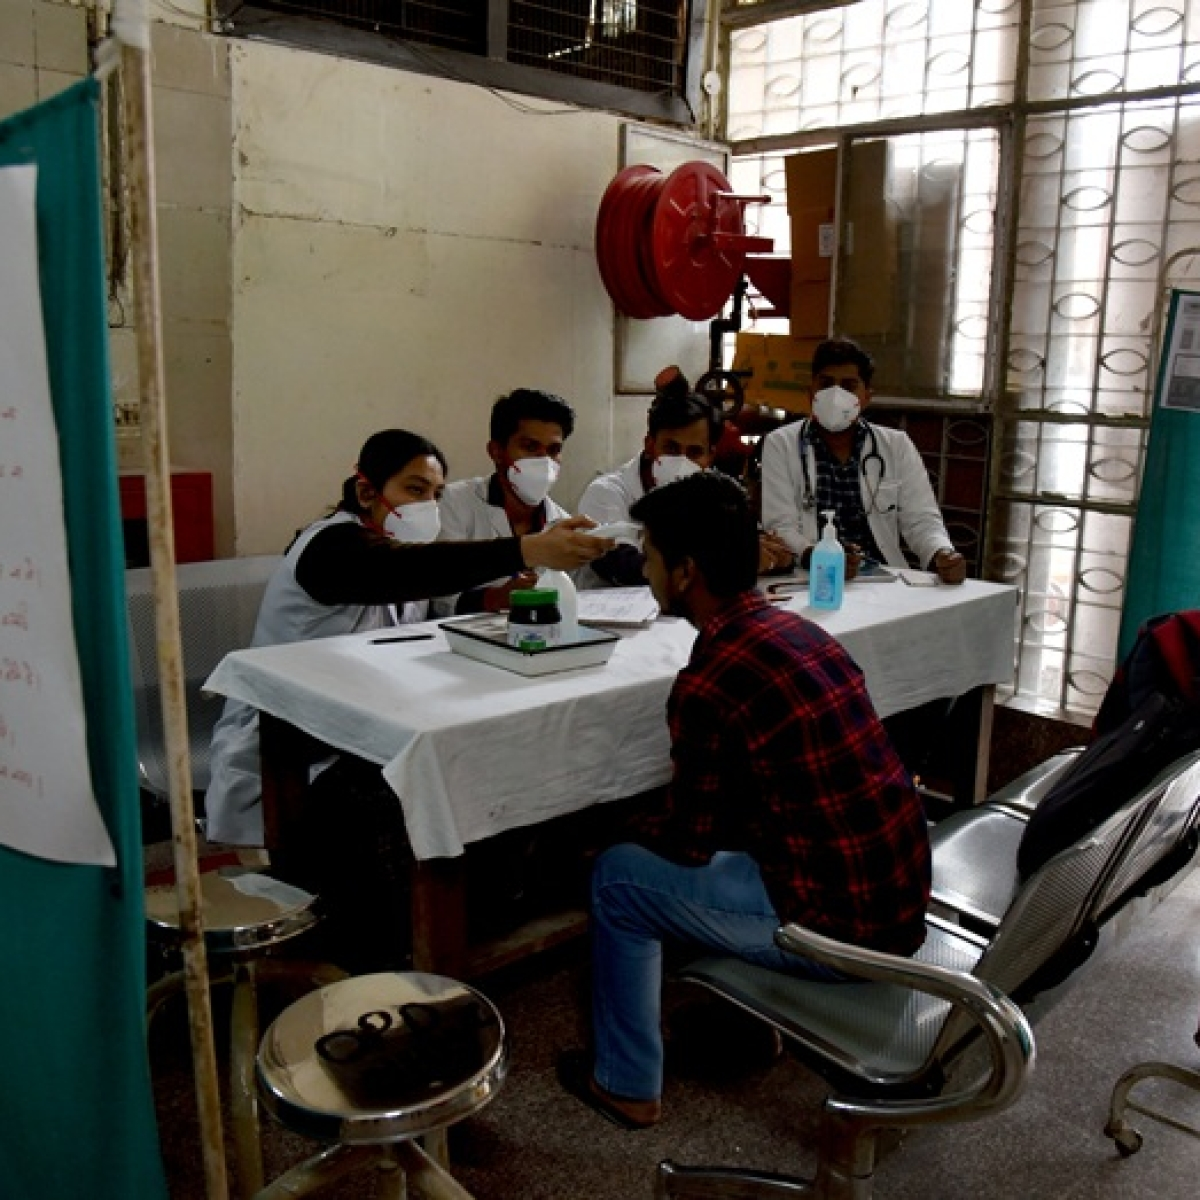 Latest News on Coronavirus on March 17 from India and the world